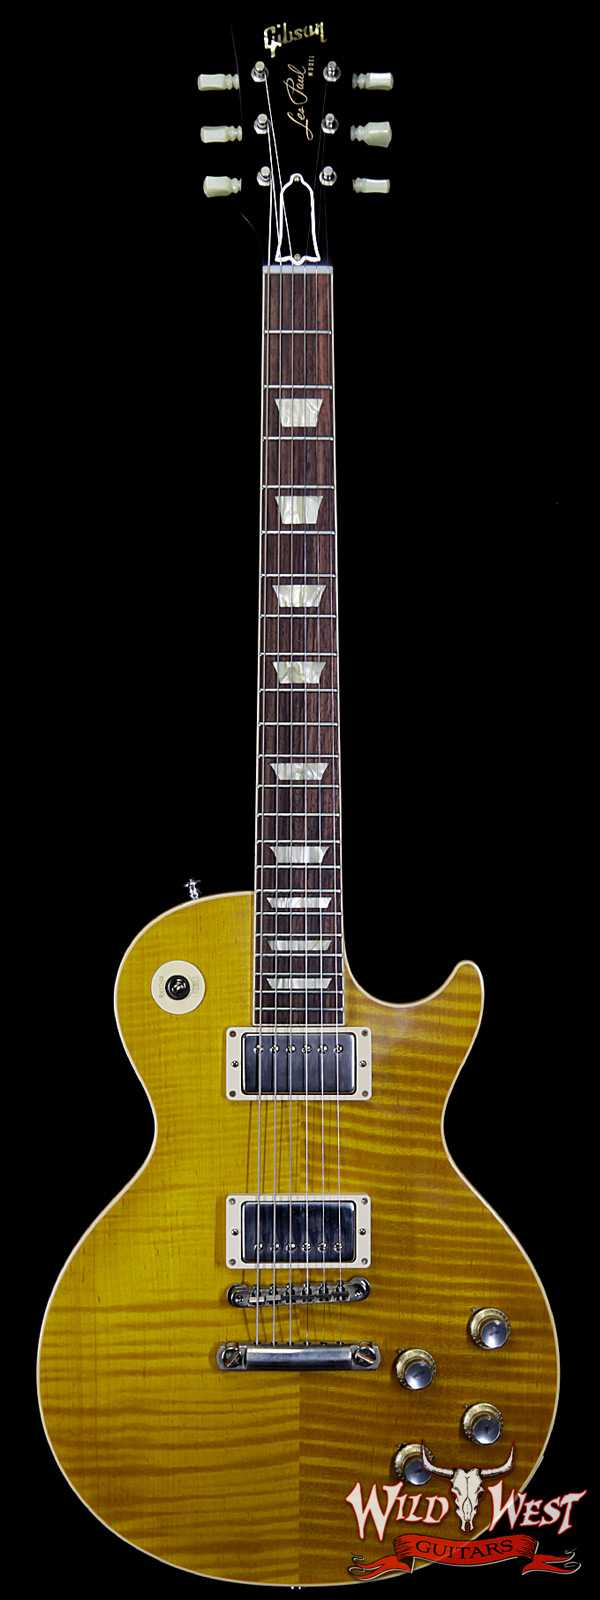 Gibson Custom Shop M2M Hand Selected Kill Top 1960 Les Paul Standard '60 Reissue R0 VOS Mojave Fade 8.30 LBS